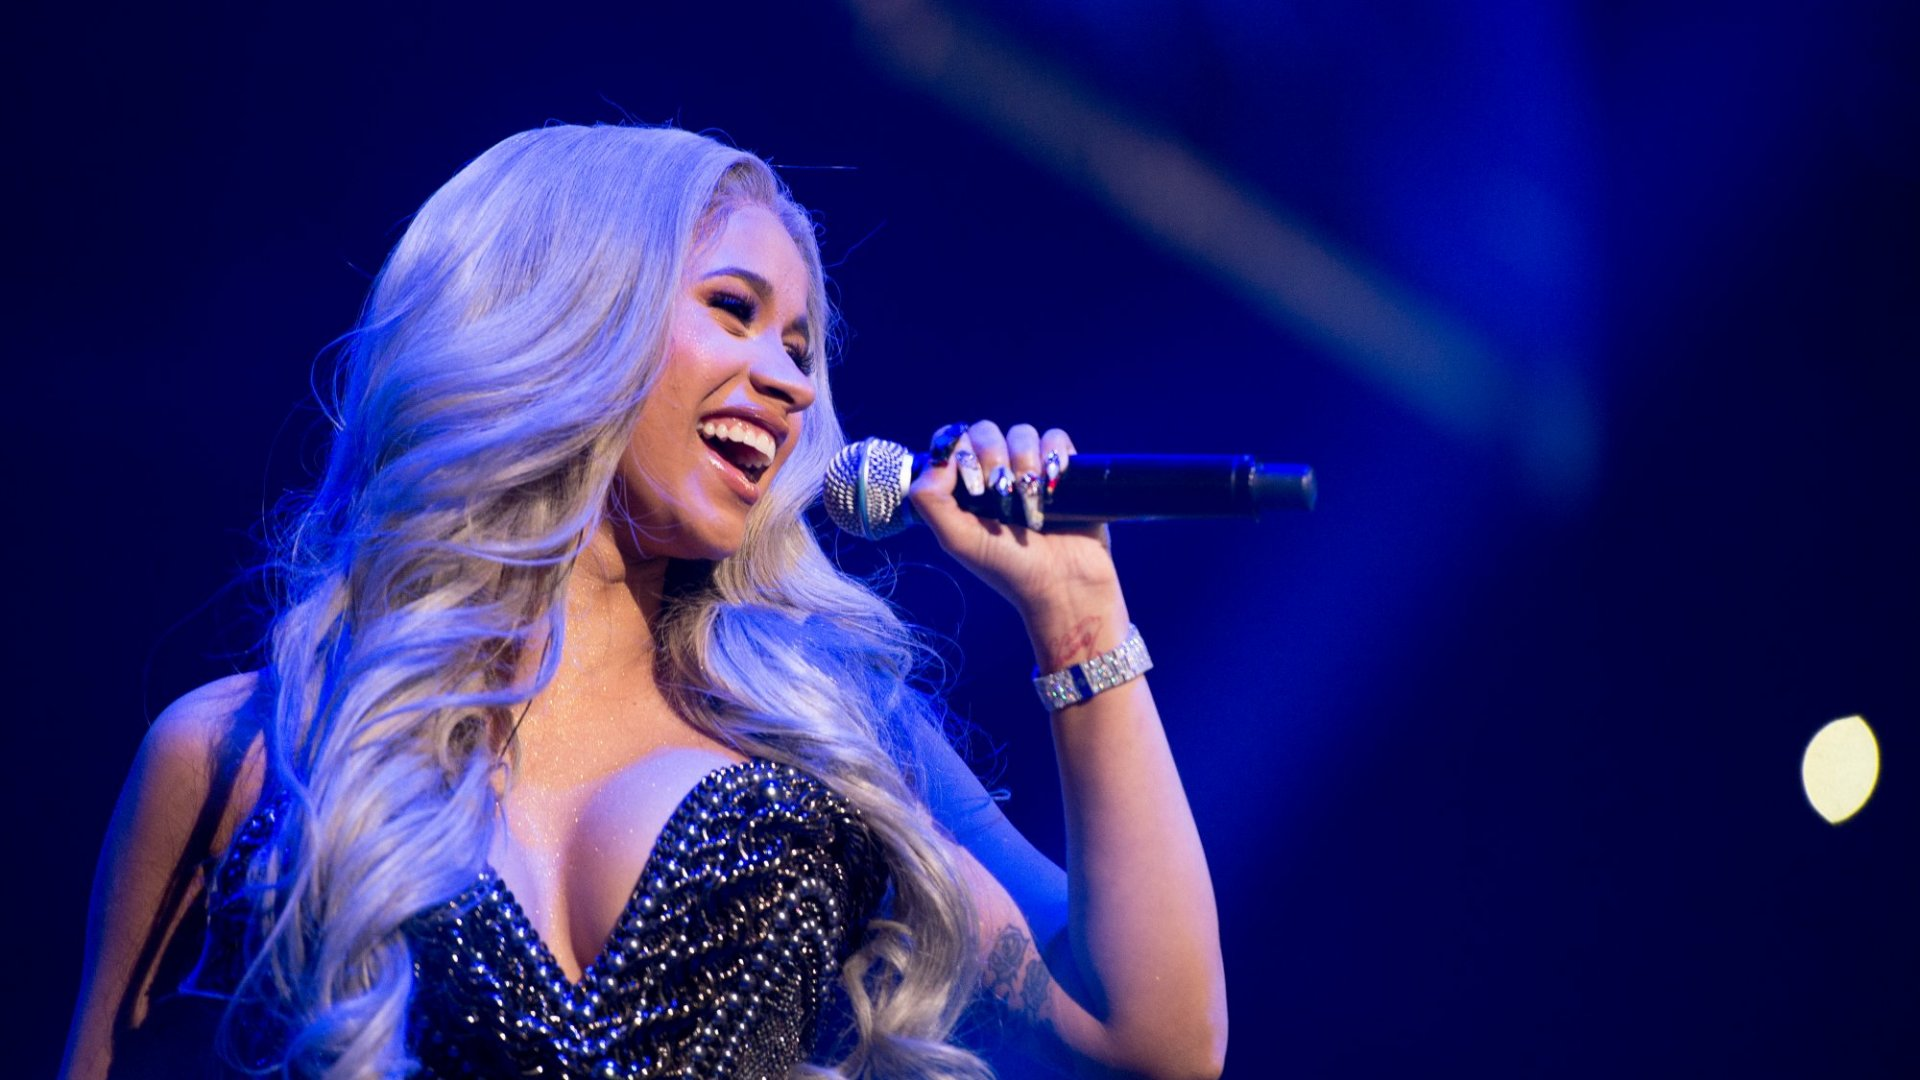 Cardi B's Personal Brand Took the Media by Storm. Here's What You Can Learn From It